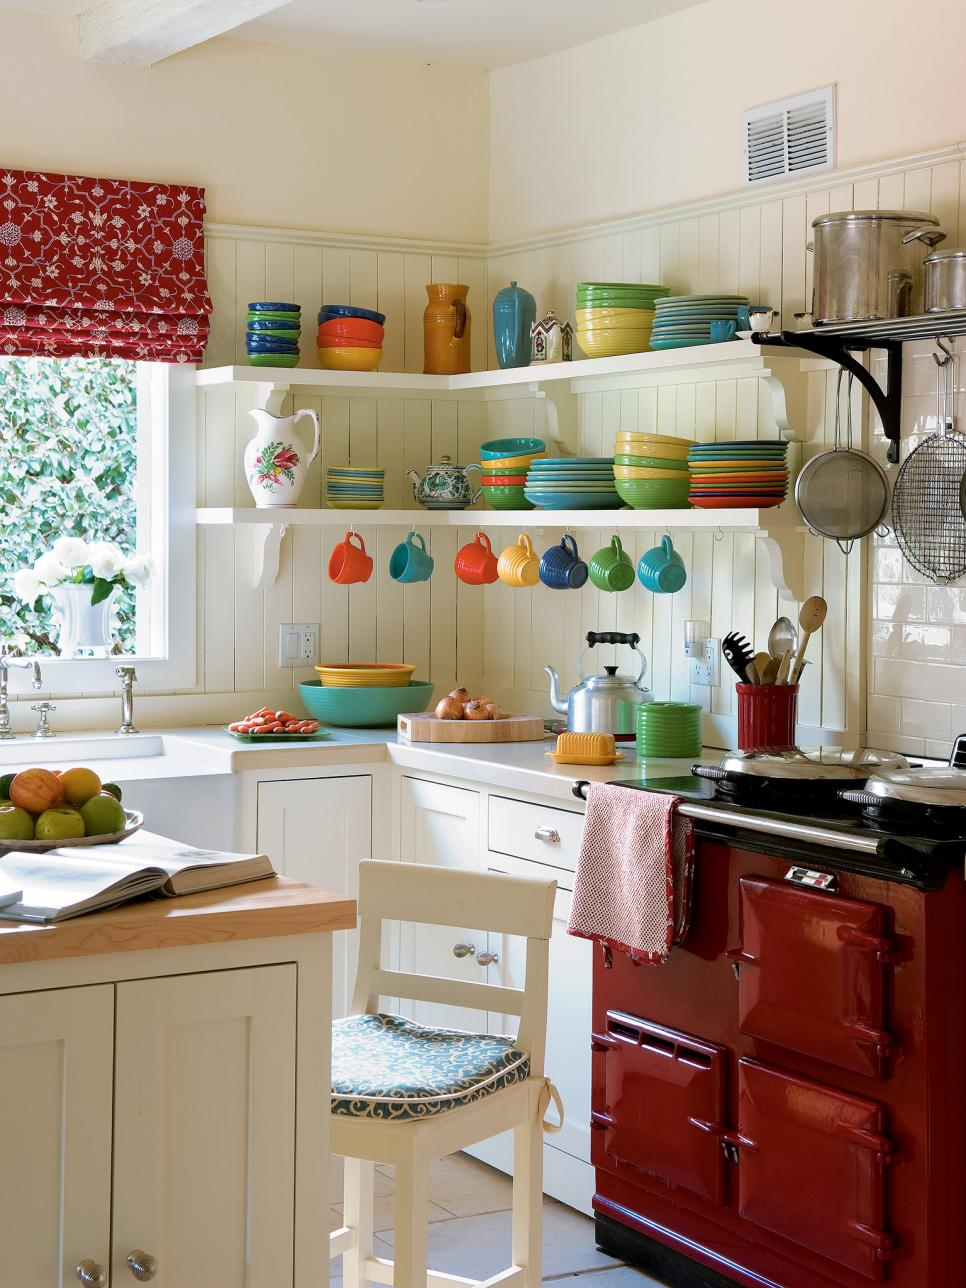 Small L-shaped Kitchen With Red & White Cabinets Dwellingdecor